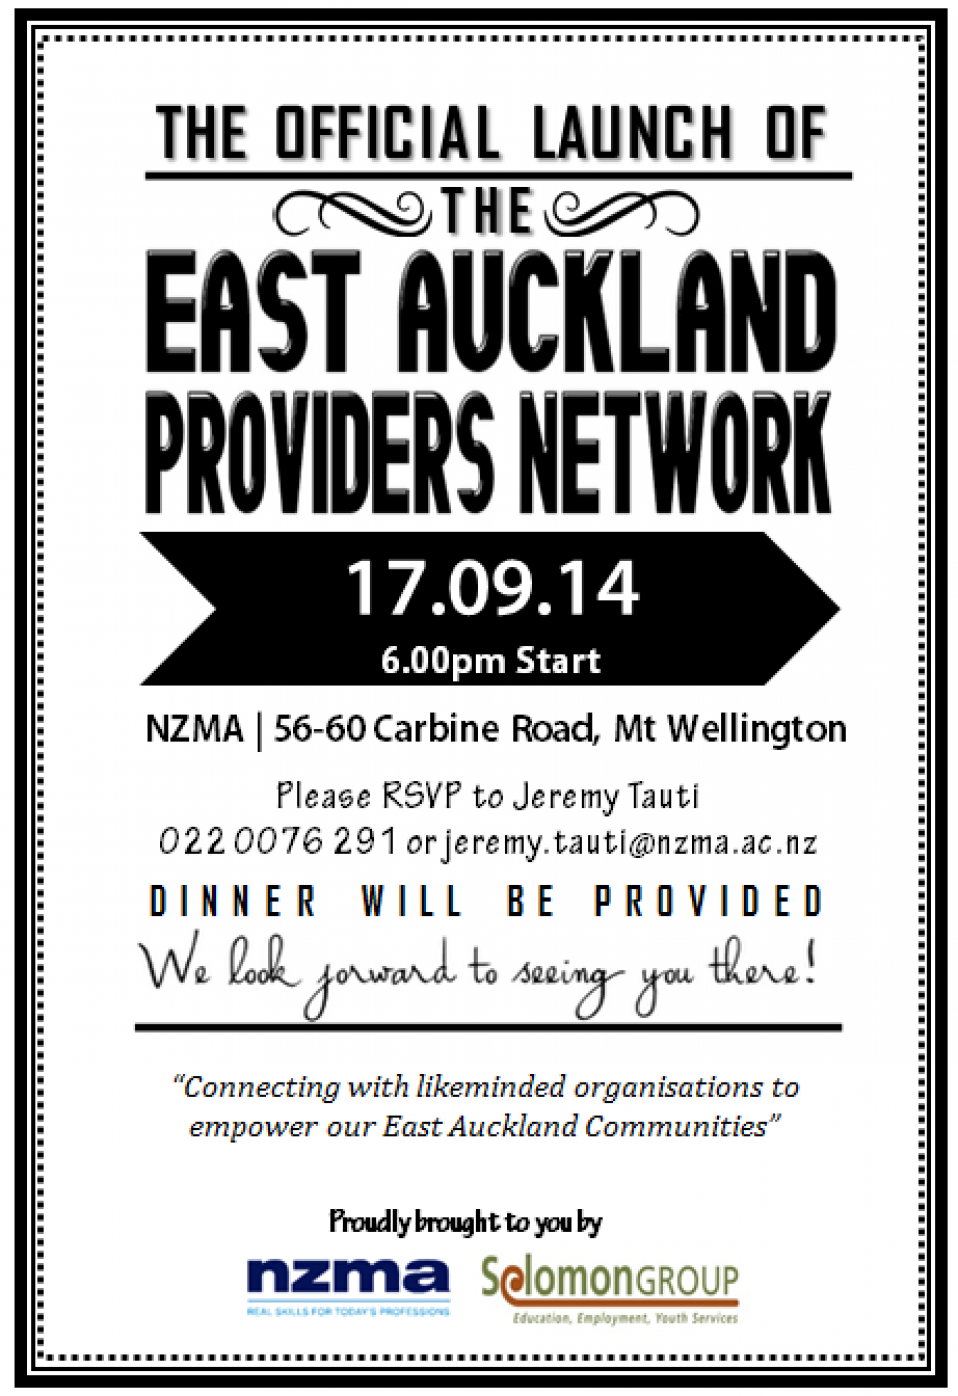 Launch of the EAST AUCKLAND PROVIDERS NETWORK